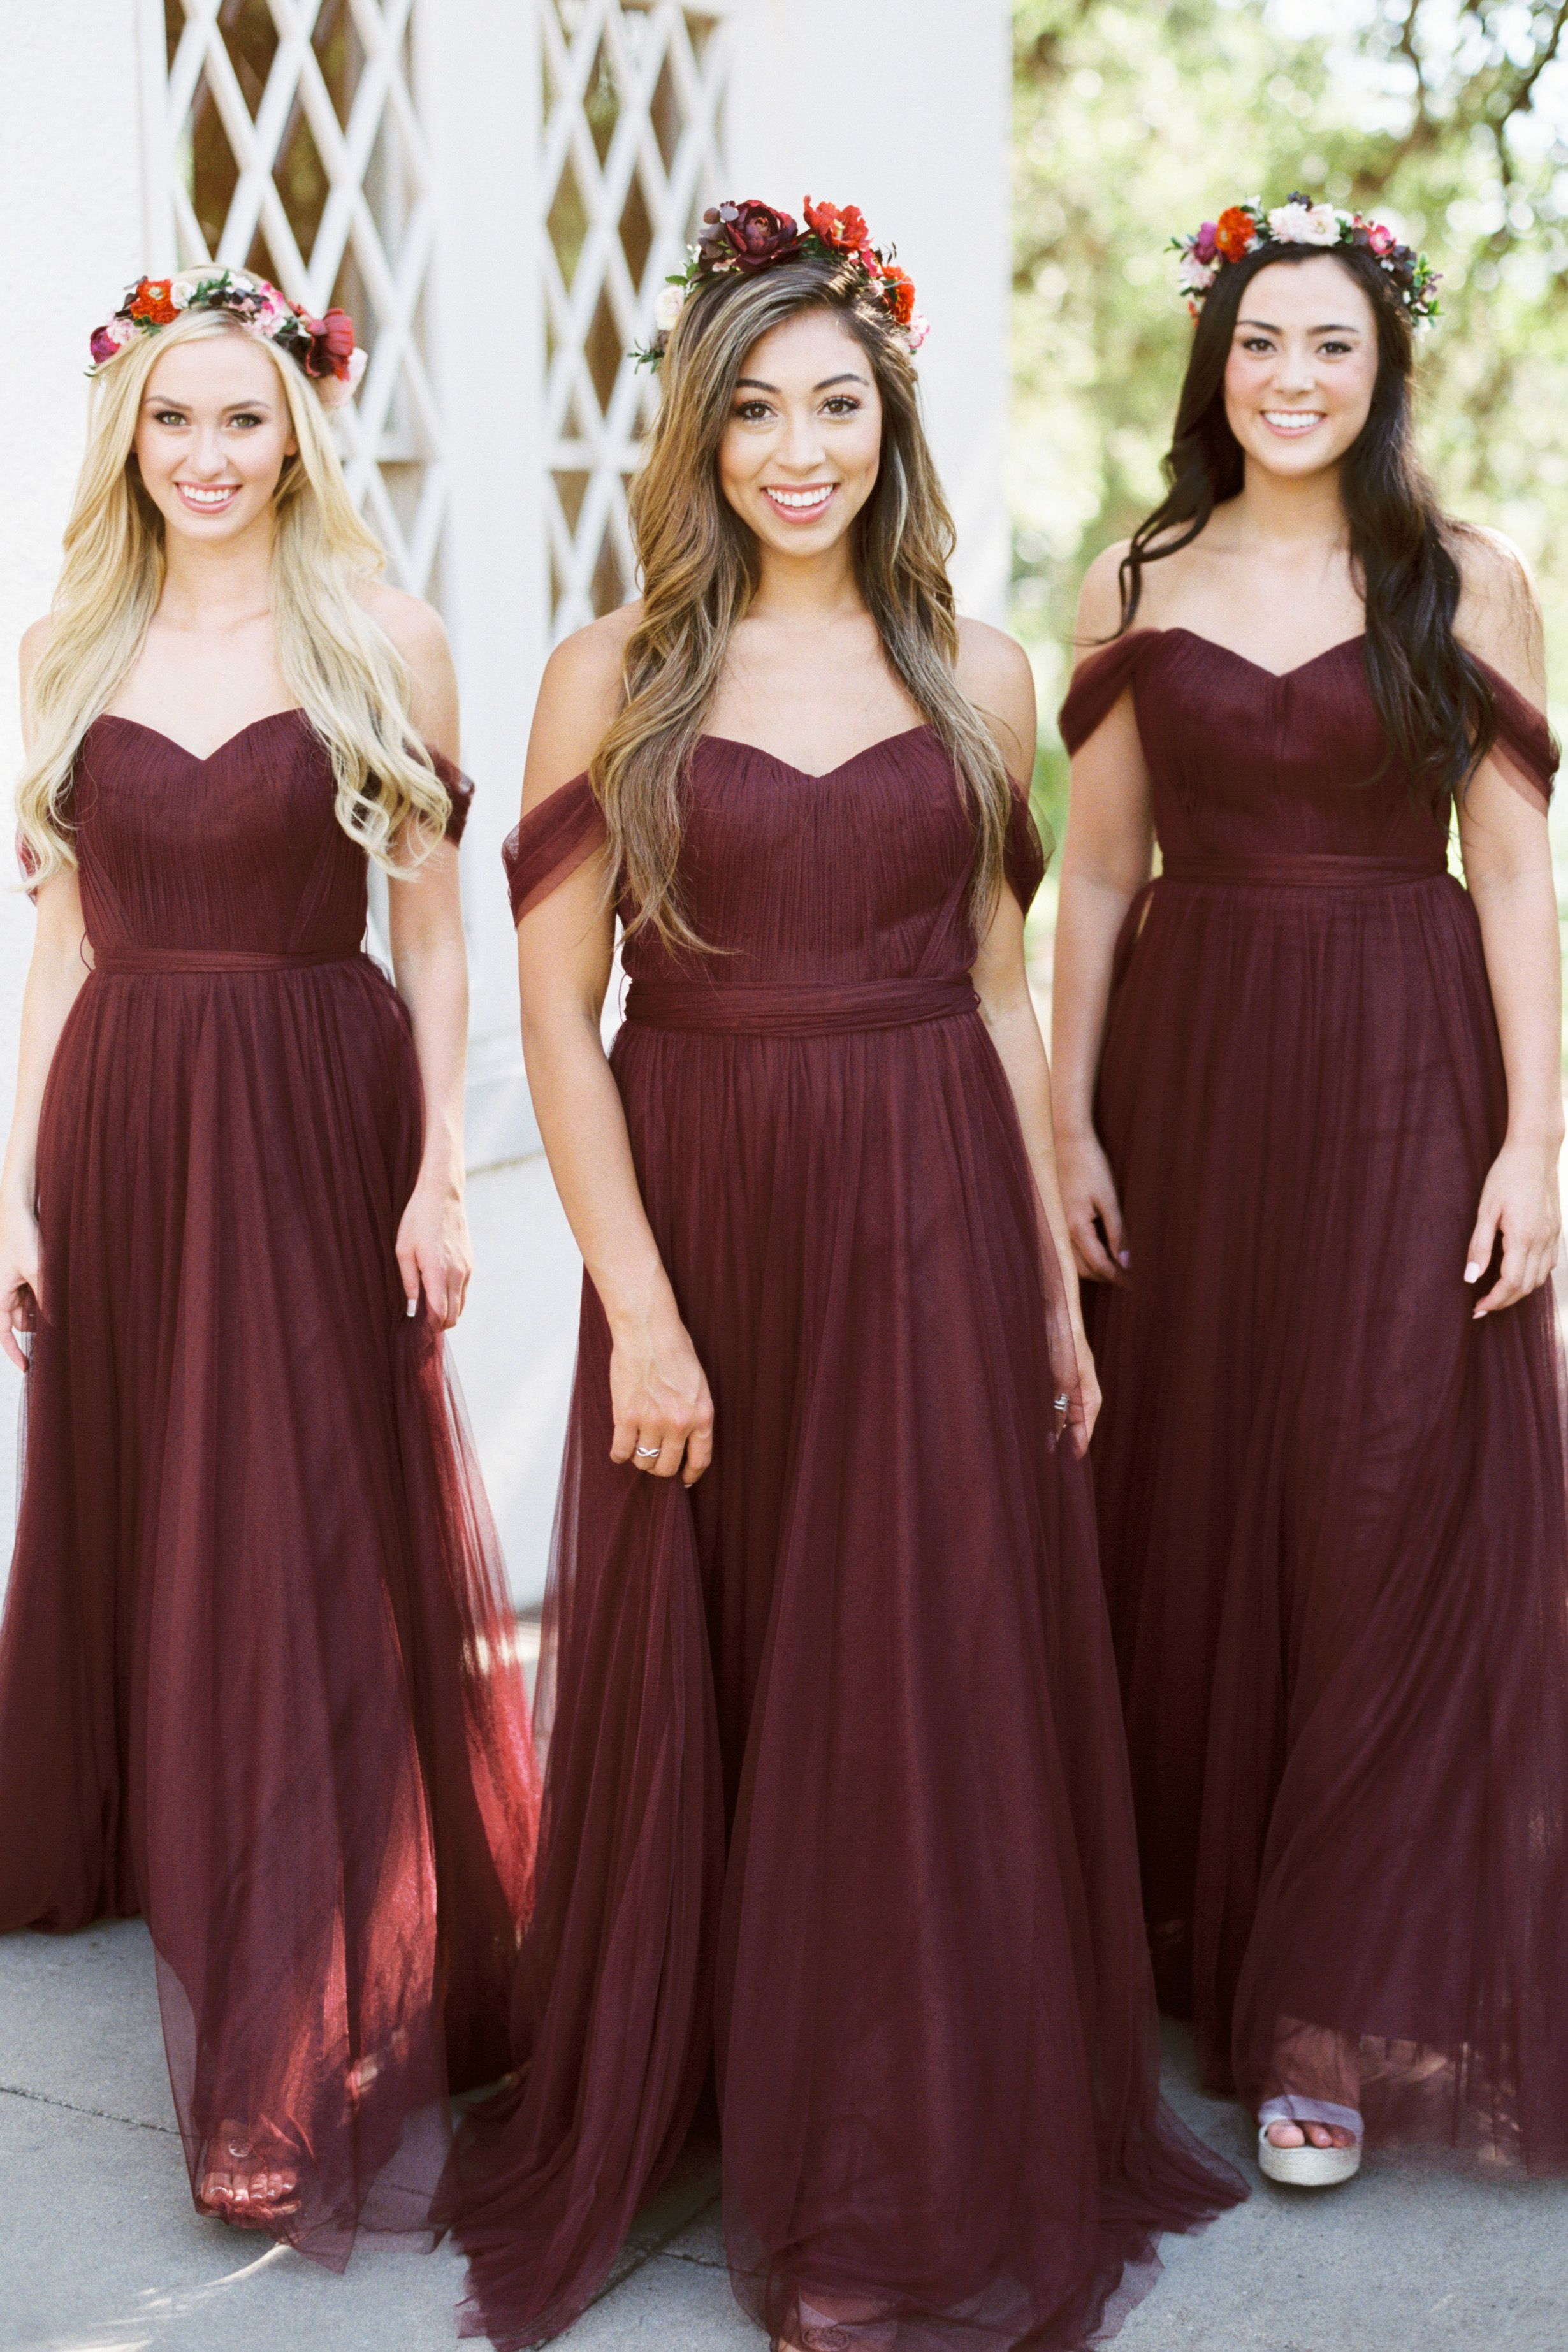 Bridesmaid dresses and separates from the leading ecommerce